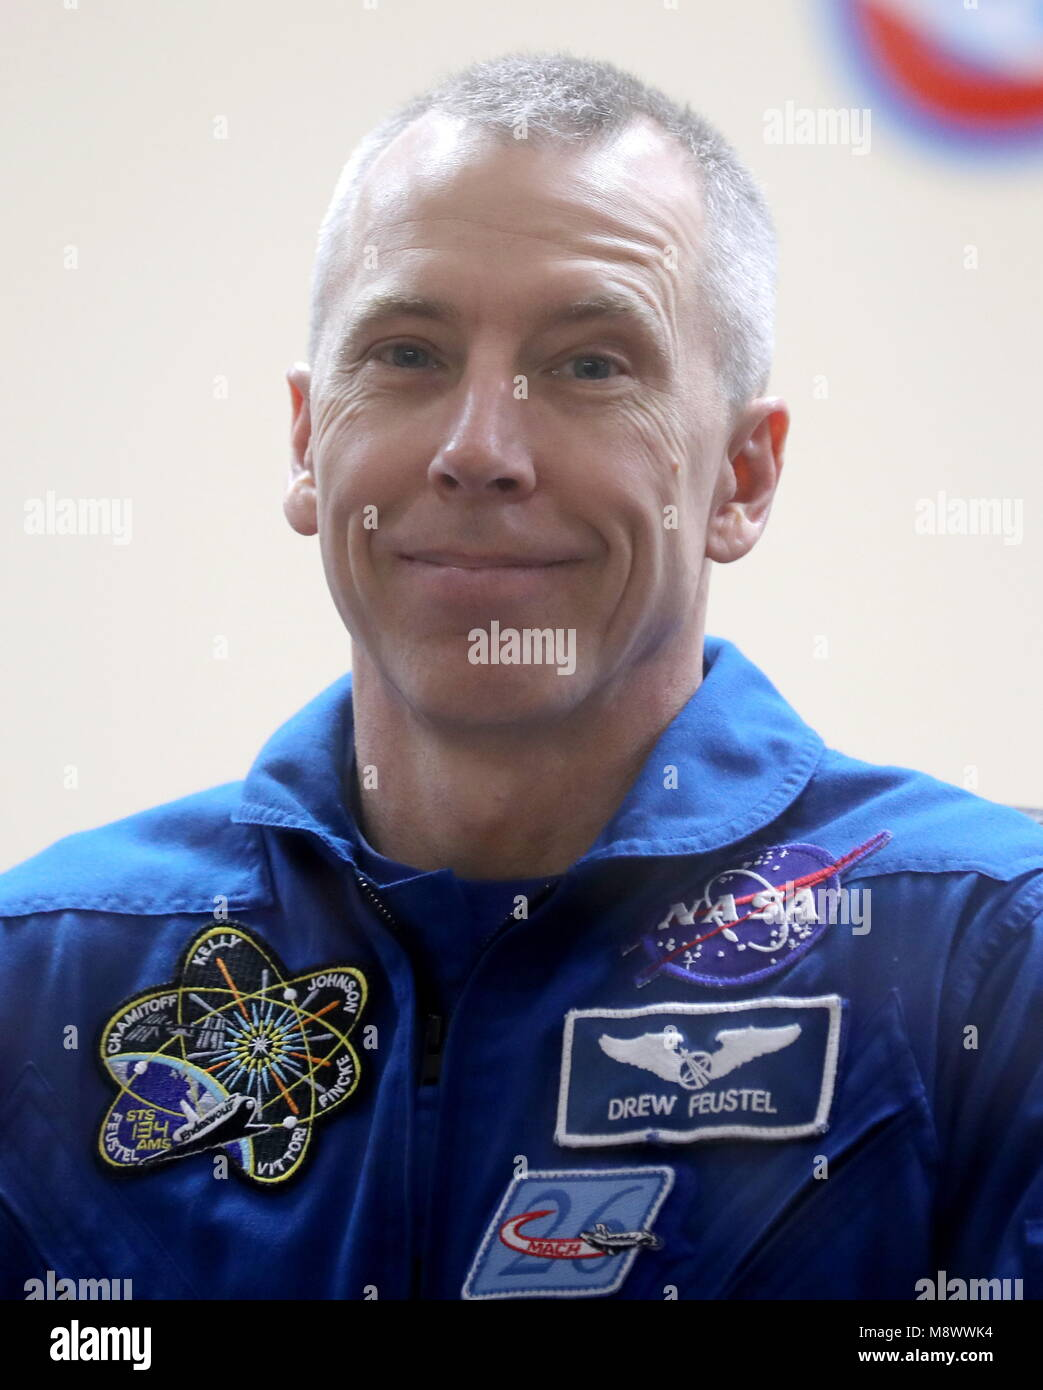 Baikonur, Kazakhstan. 20th Mar, 2018. BAIKONUR, KAZAKHSTAN - MARCH 20, 2018: NASA astronaut Andrew J. Feustel smiles - Stock Image